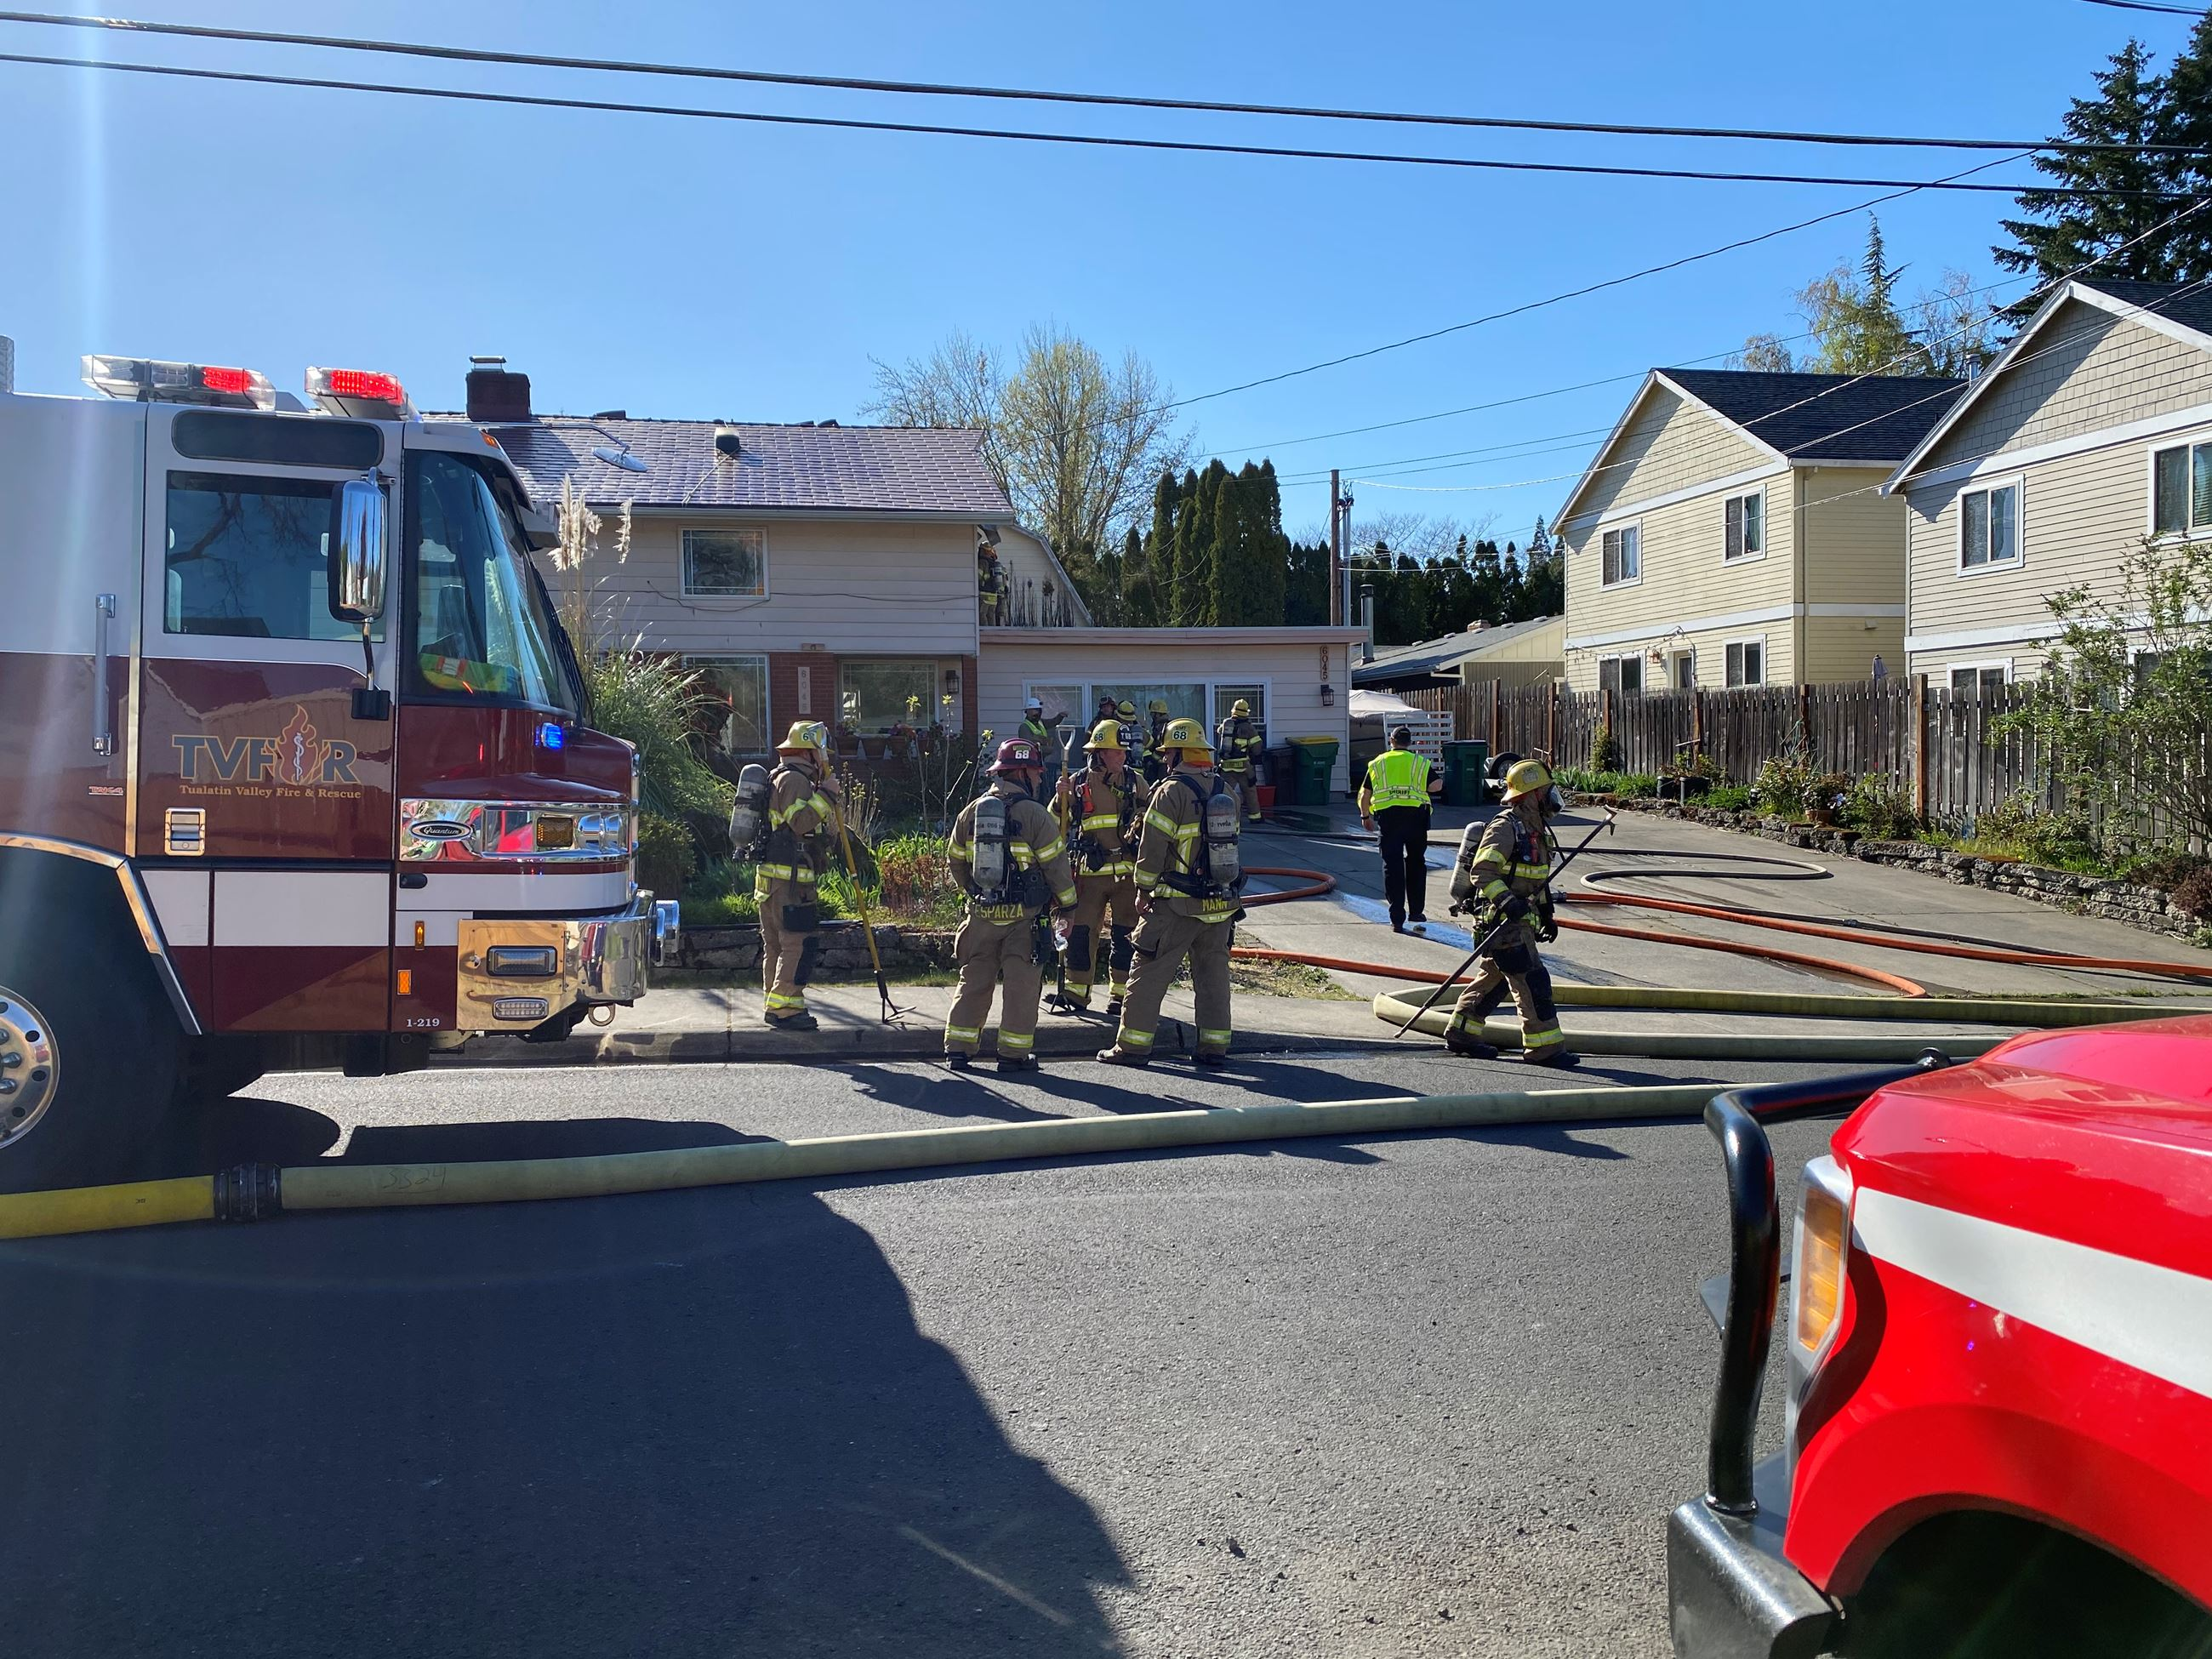 167th Avenue House Fire